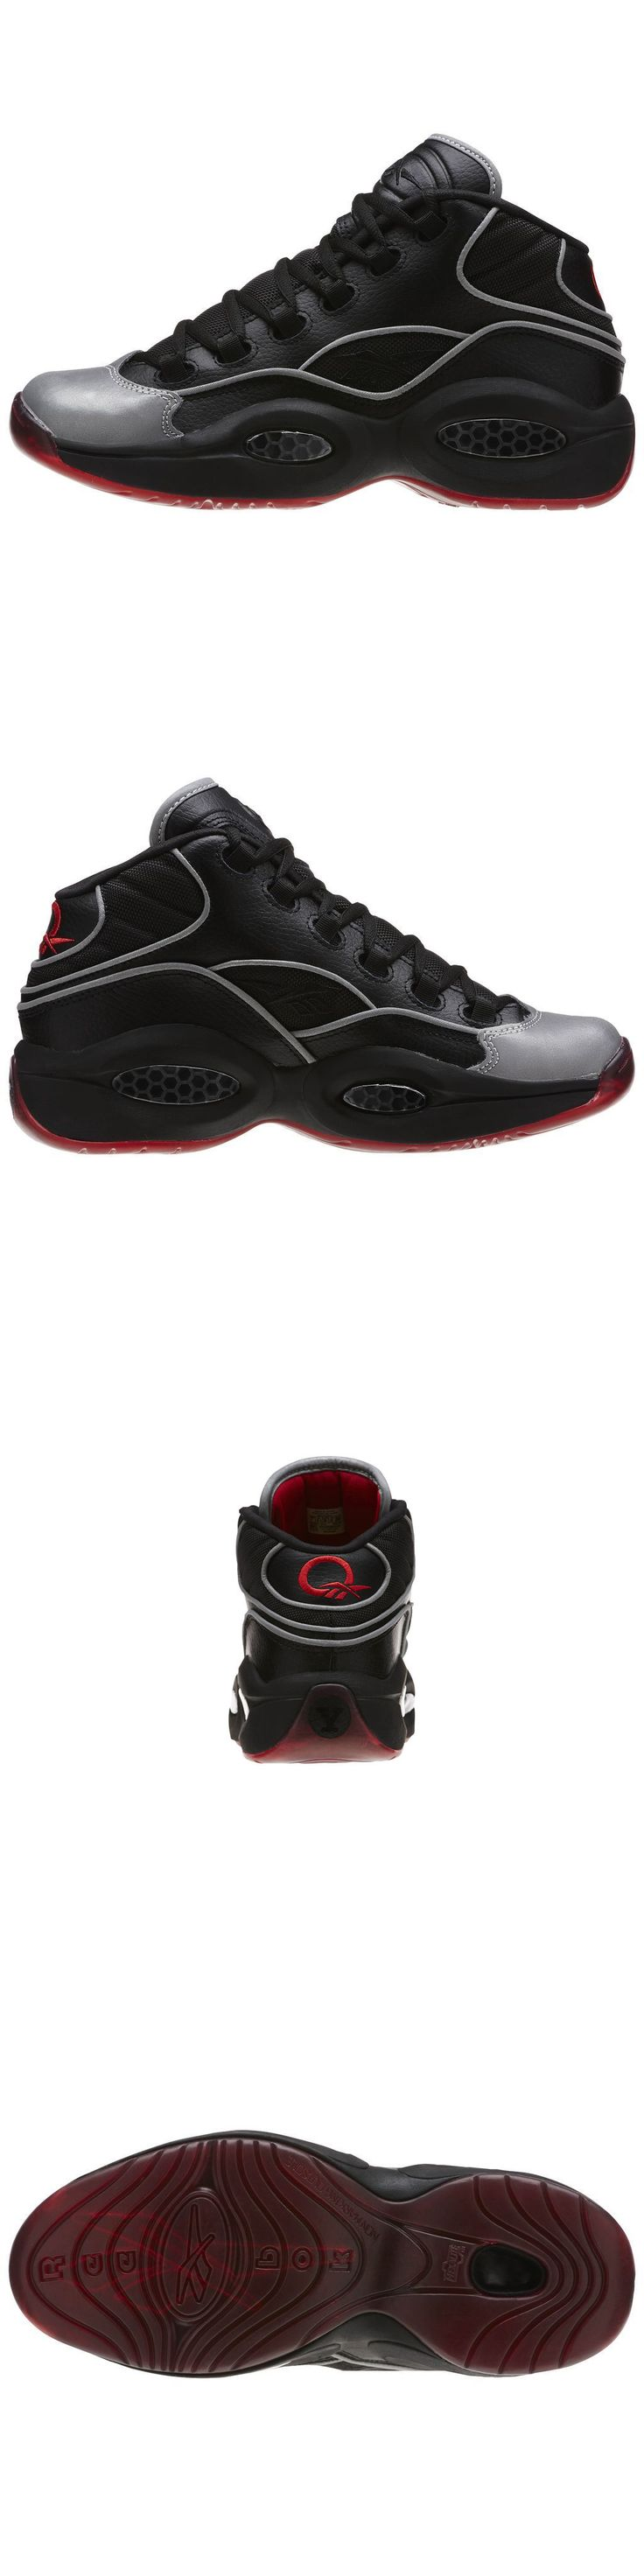 Youth 158973: Kids Question Mid A5 Jadakiss Bd4332 Boys Reebok Gs Black Silver Red -> BUY IT NOW ONLY: $49 on eBay!